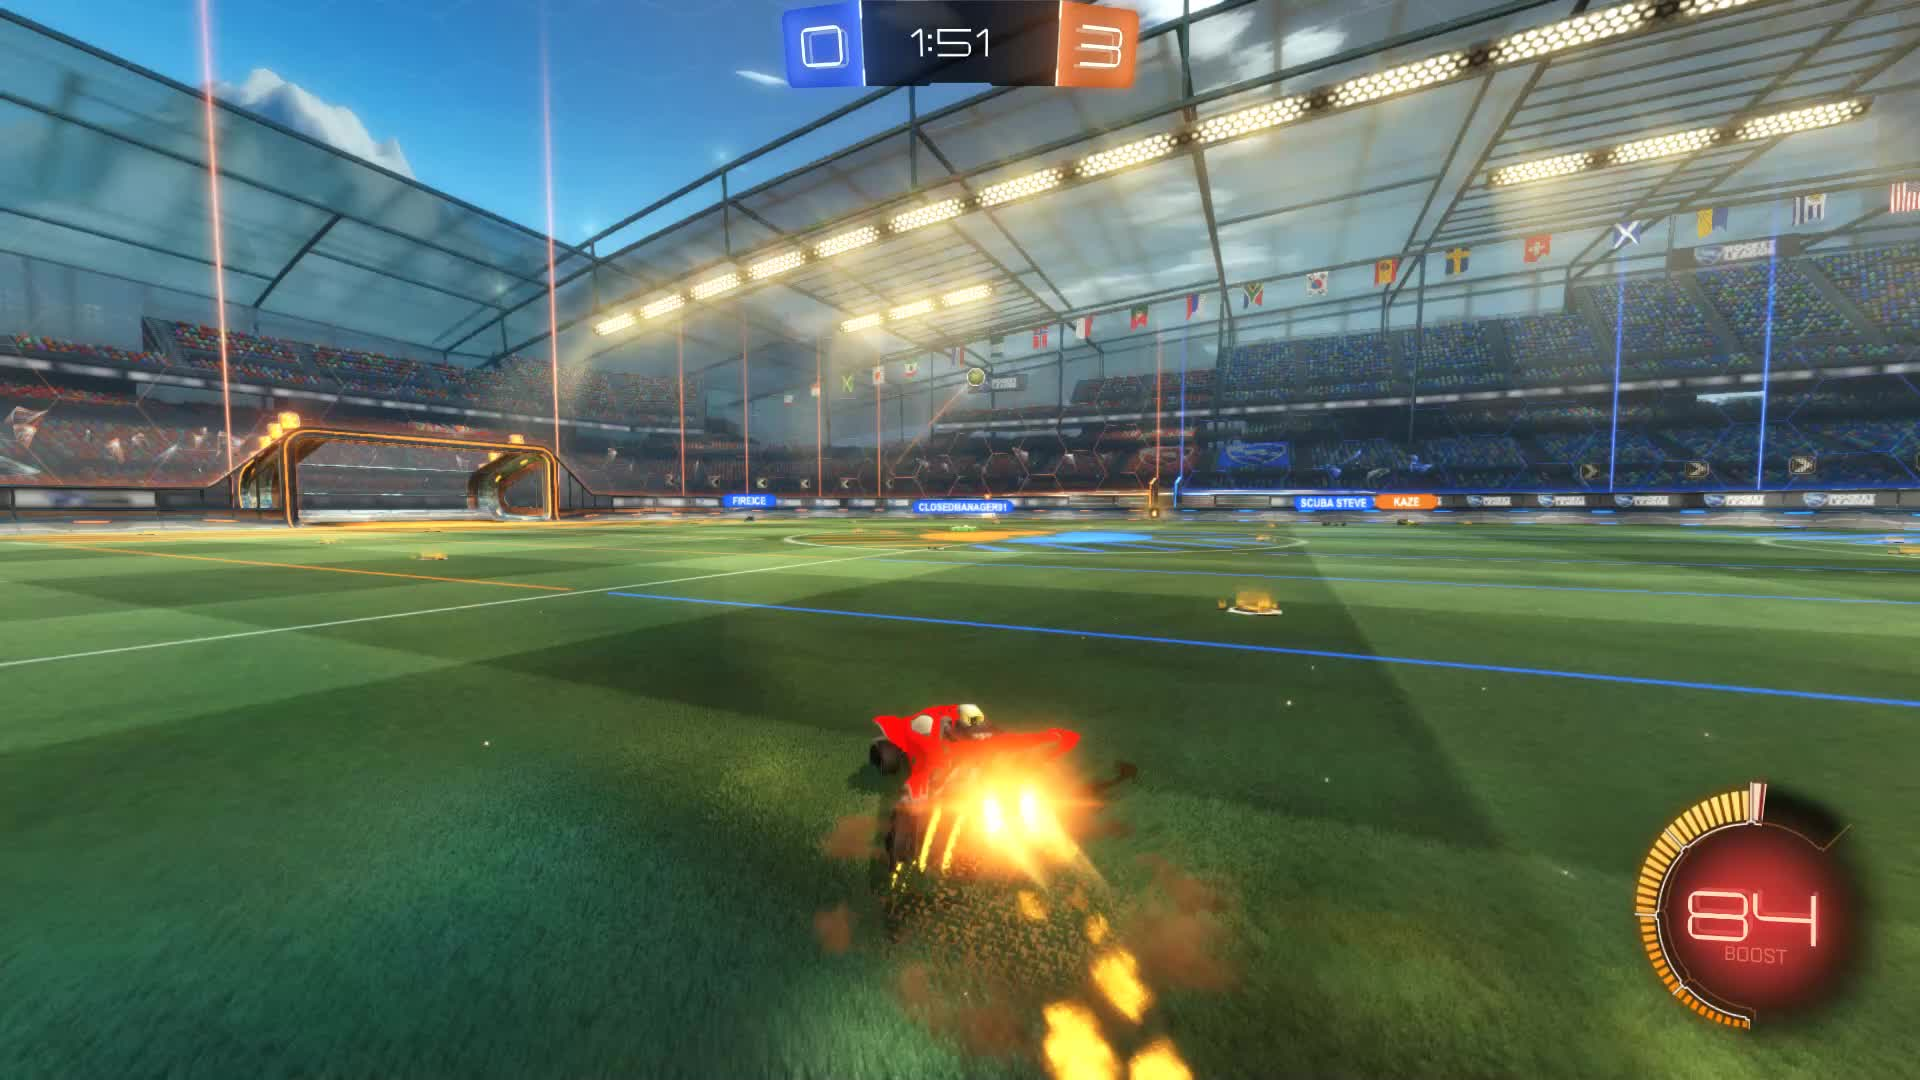 Gif Your Game, GifYourGame, Goal, Rocket League, RocketLeague, Silasco | Twitch, Goal 4: Scuba Steve GIFs